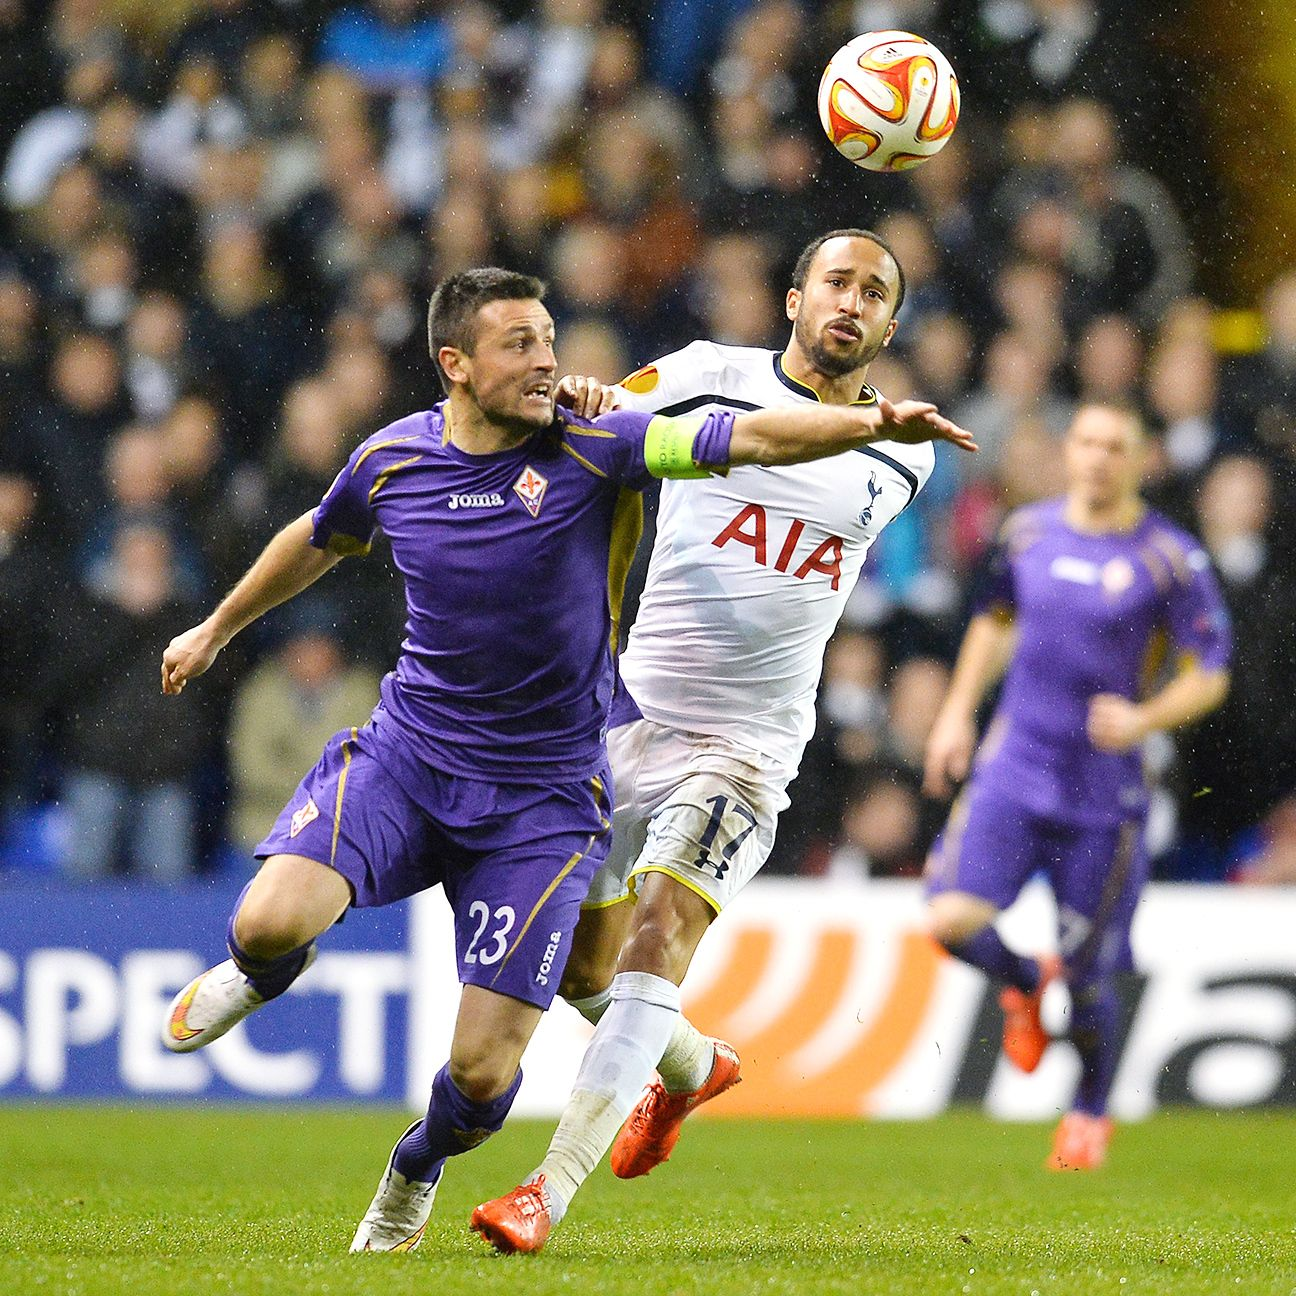 After a sparkling first 45 minutes, Andros Townsend was contained by the Fiorentina defence in the second half.